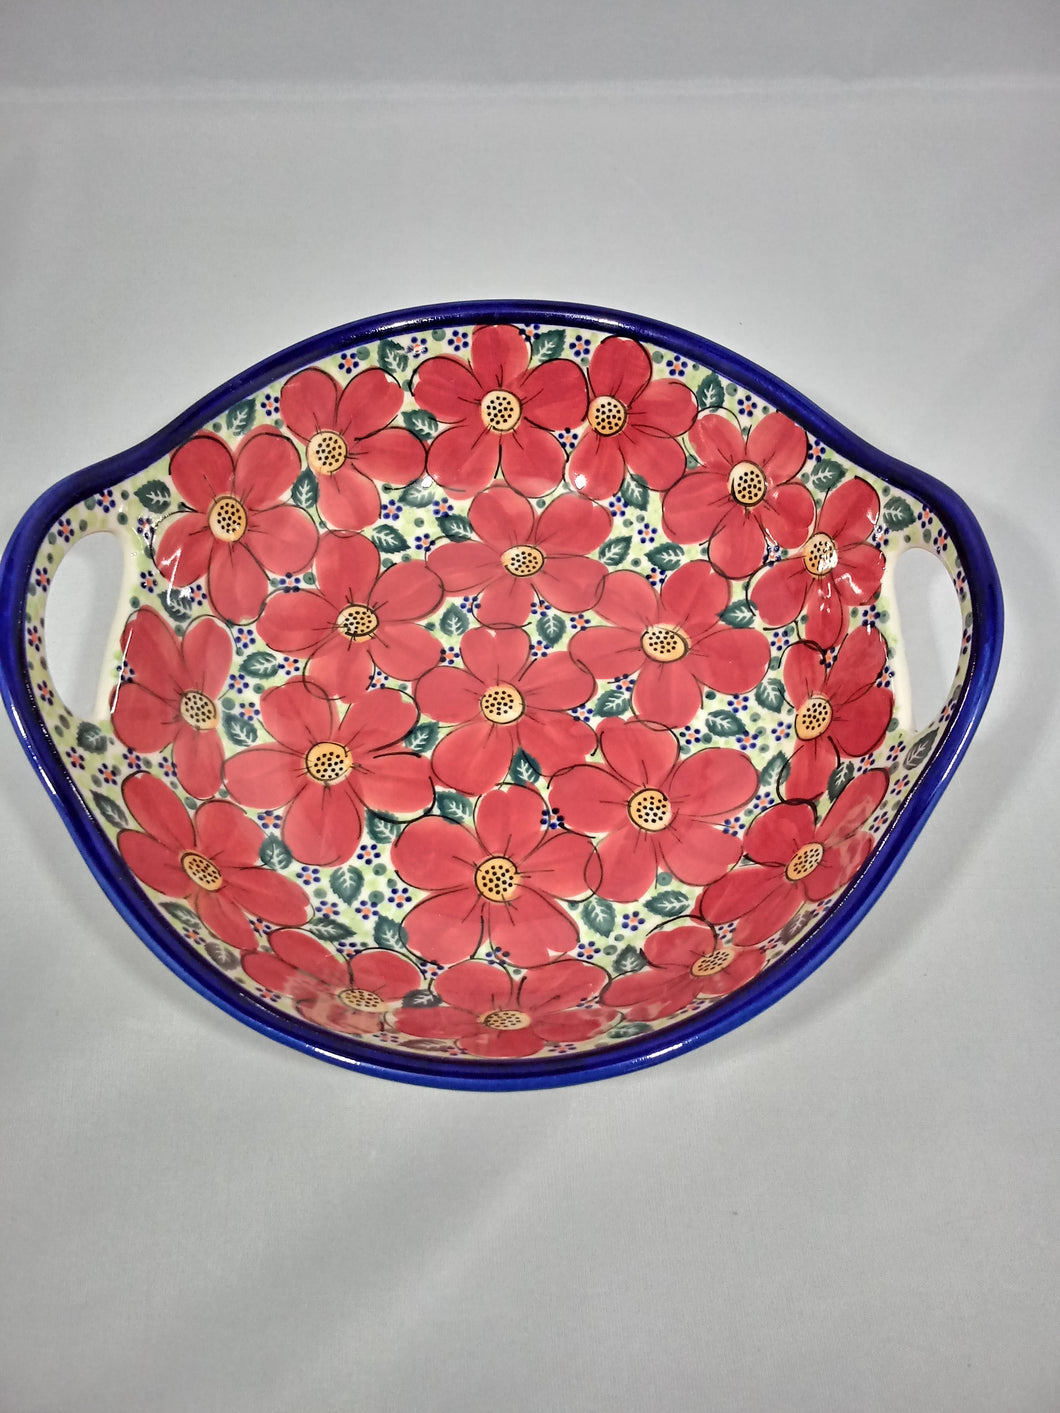 Medium Bowl with Handles - Red Poppy